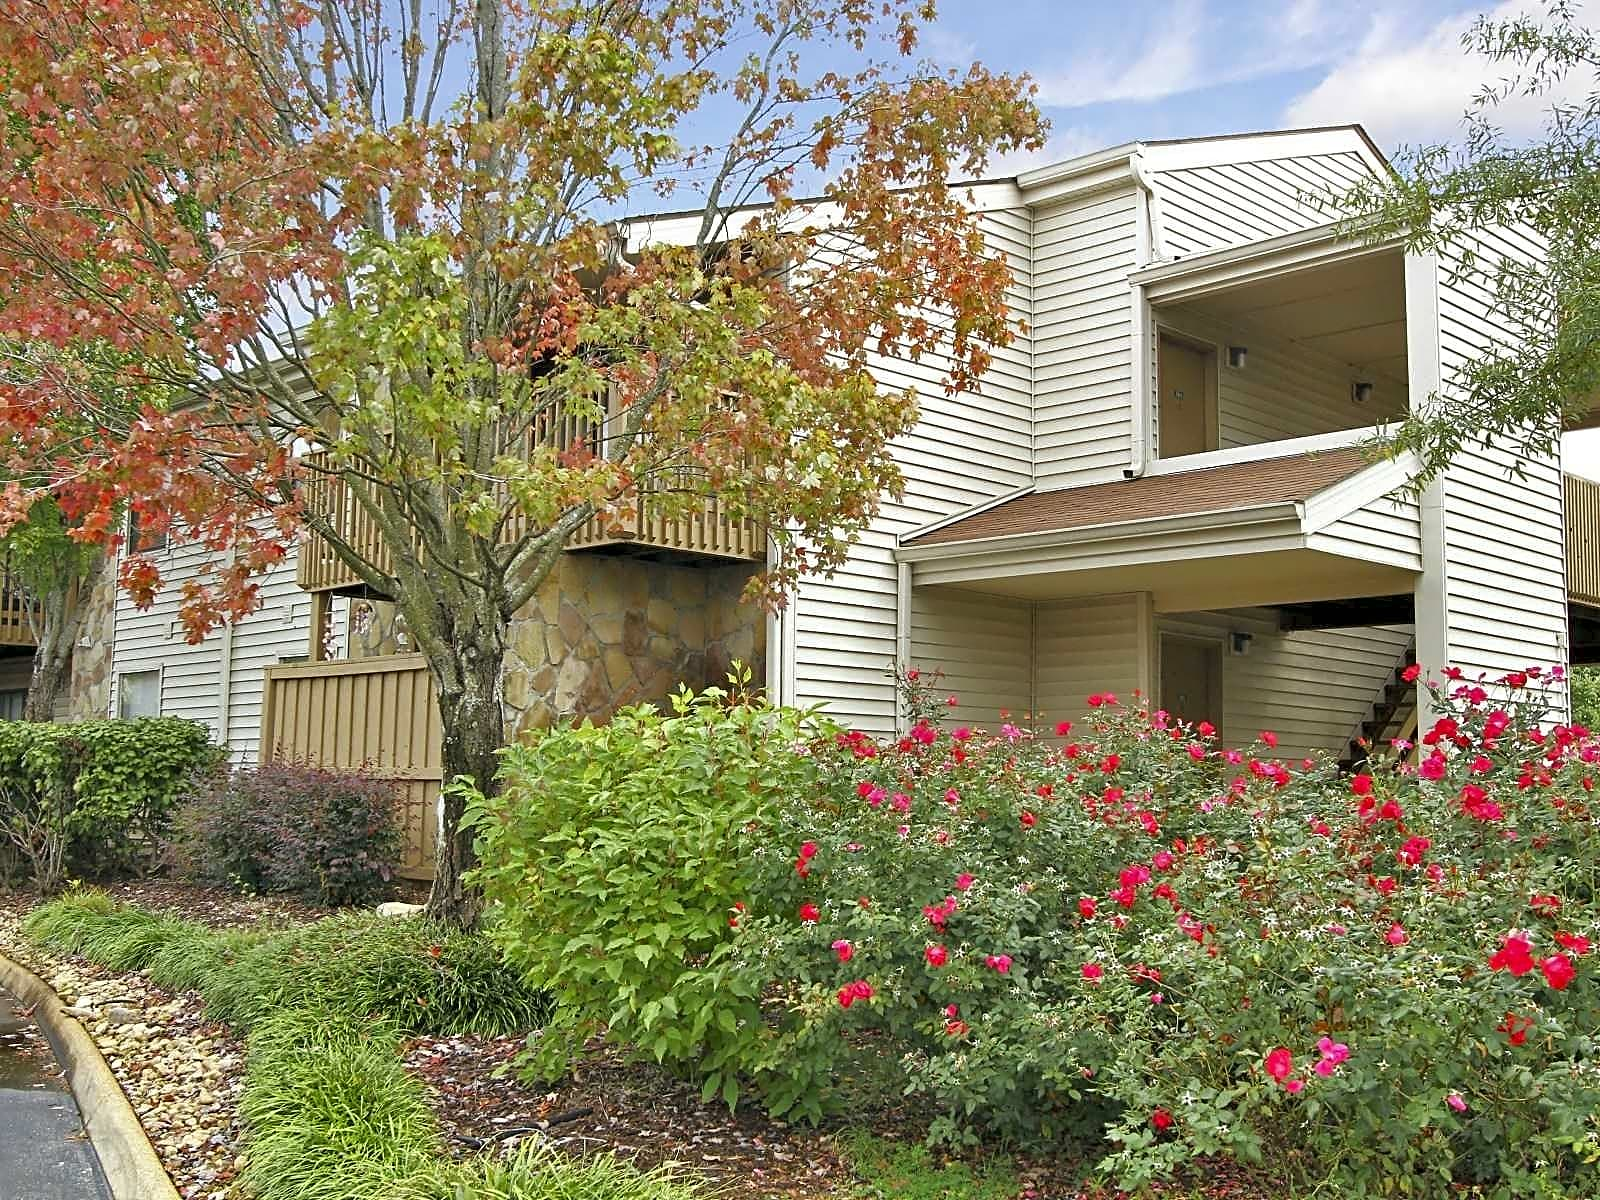 Photo: Chattanooga Apartment for Rent - $578.00 / month; 2 Bd & 2 Ba